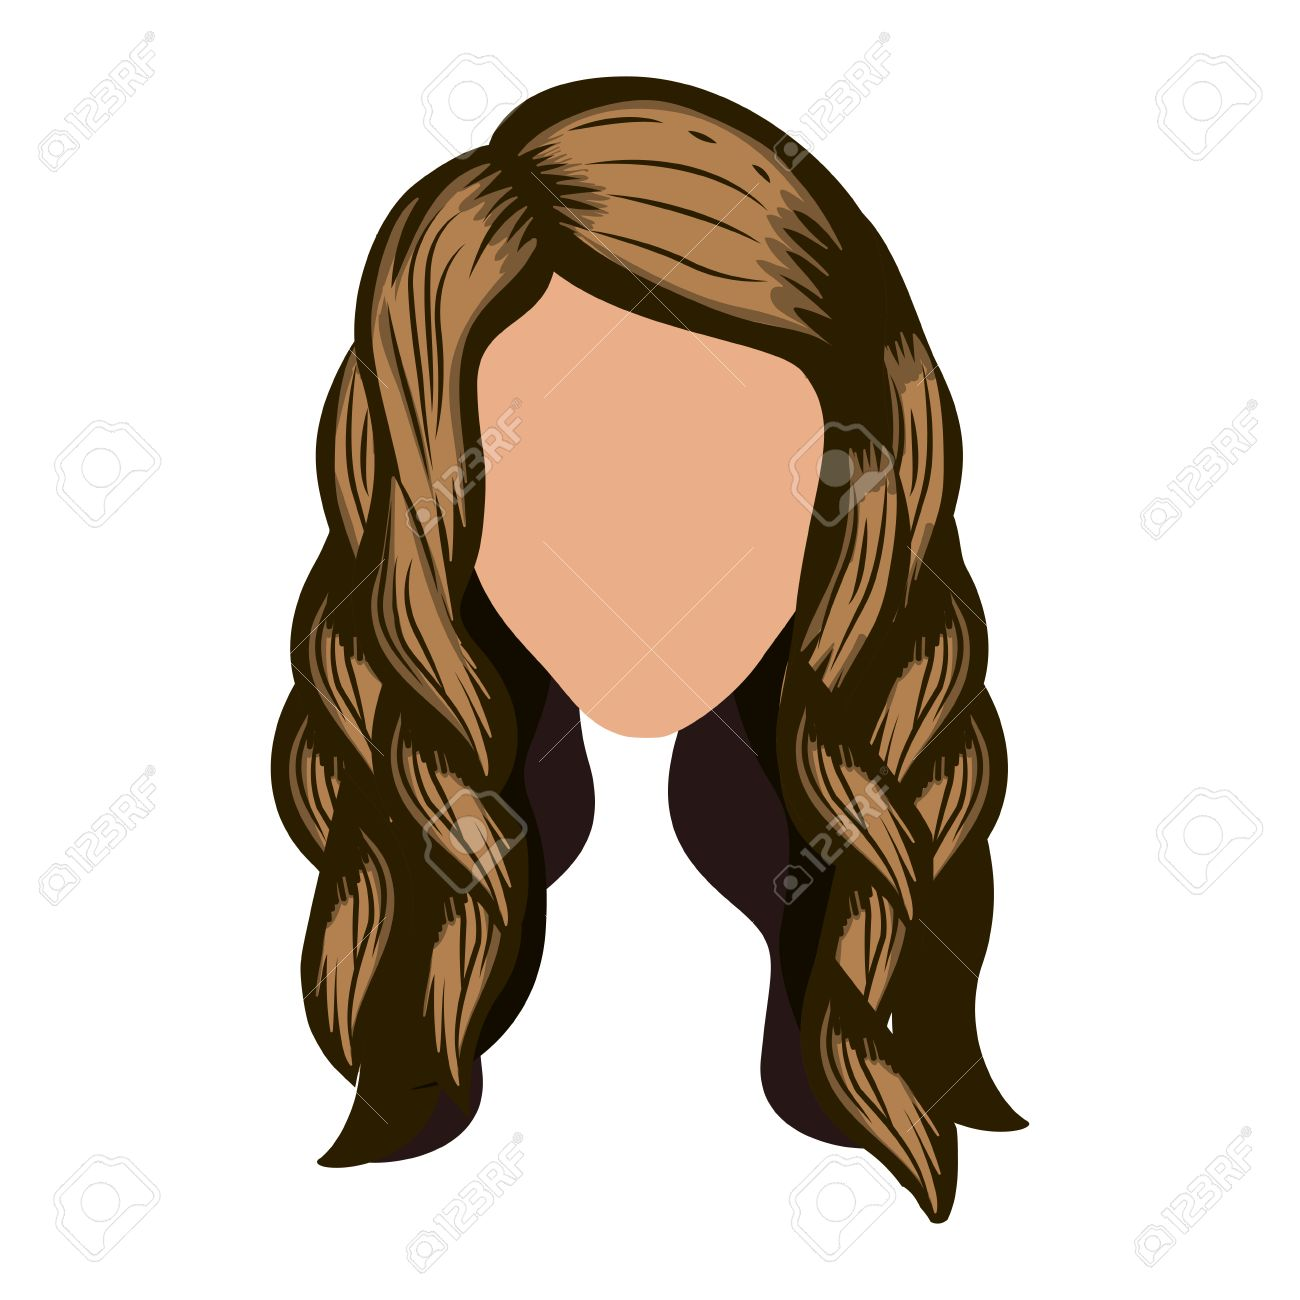 silhouette front face with wavy light brown hair vector illustration rh 123rf com vector hair test vector hairdresser